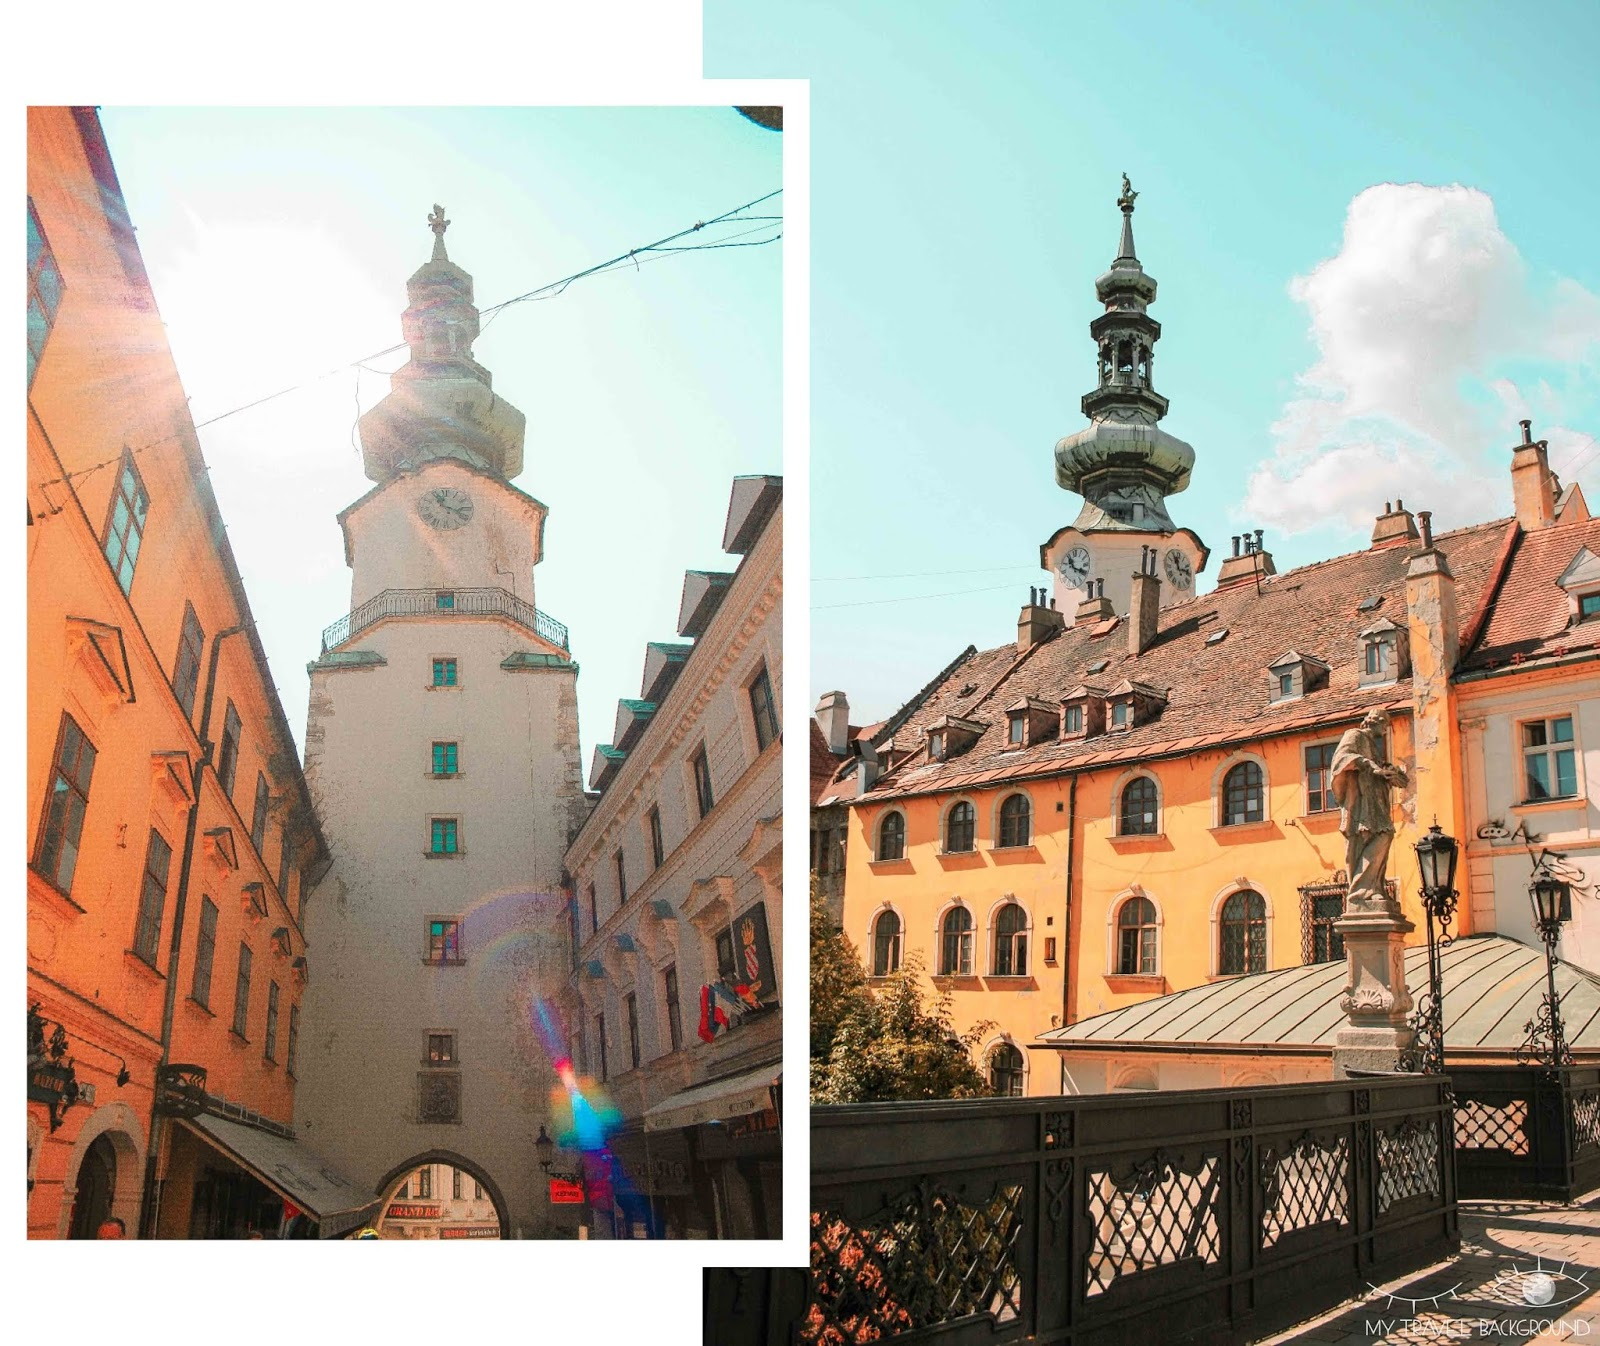 My Travel Background : visiter Bratislava, la capitale de la Slovaquie, en 1 jour - Porte Michel